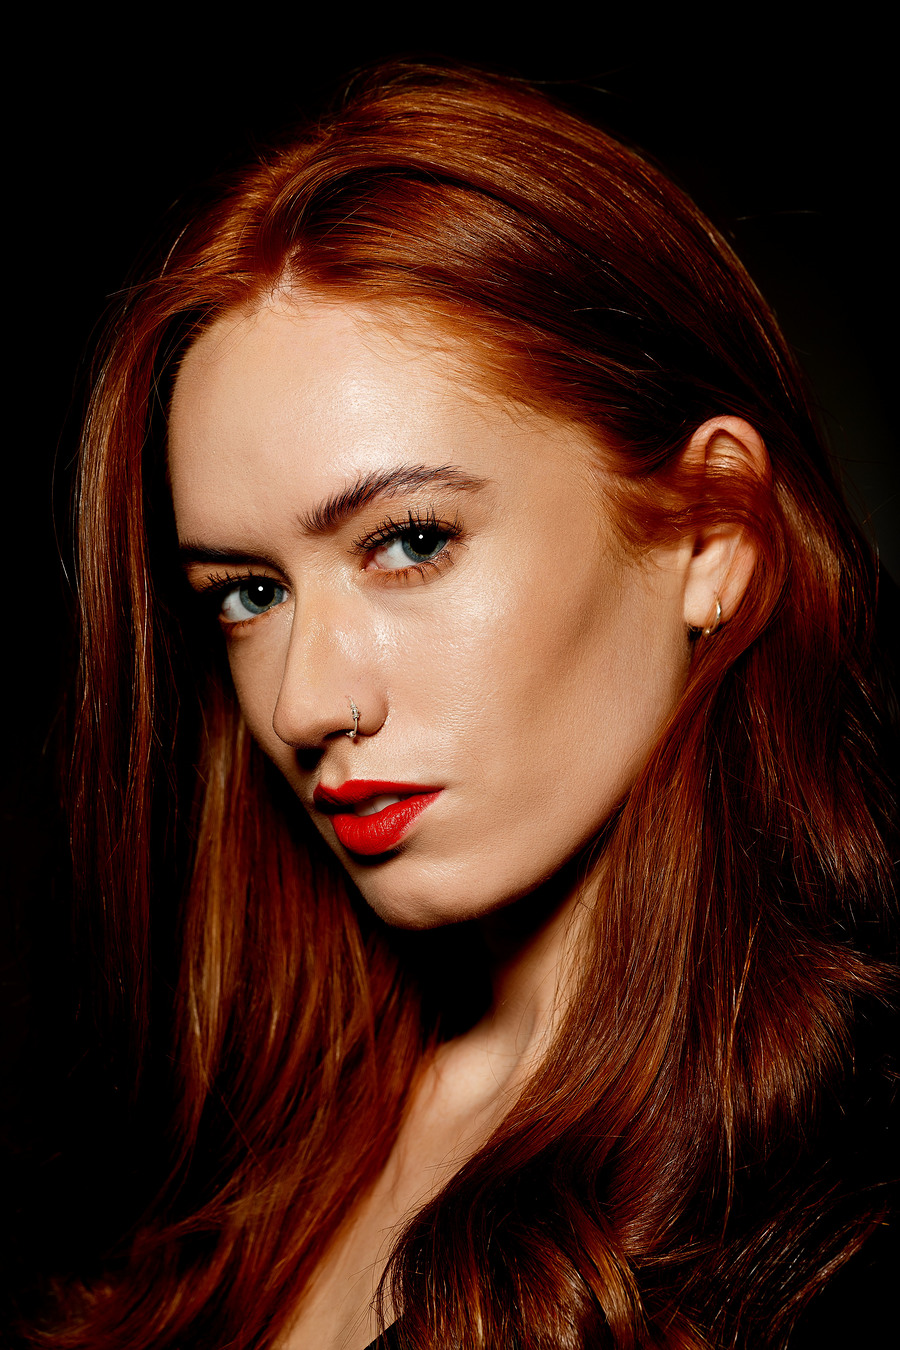 Redheaded Beauty / Photography by Simon Reynolds, Model jennyosullivan, Taken at Mick Payton Studios / Uploaded 13th August 2018 @ 09:24 PM